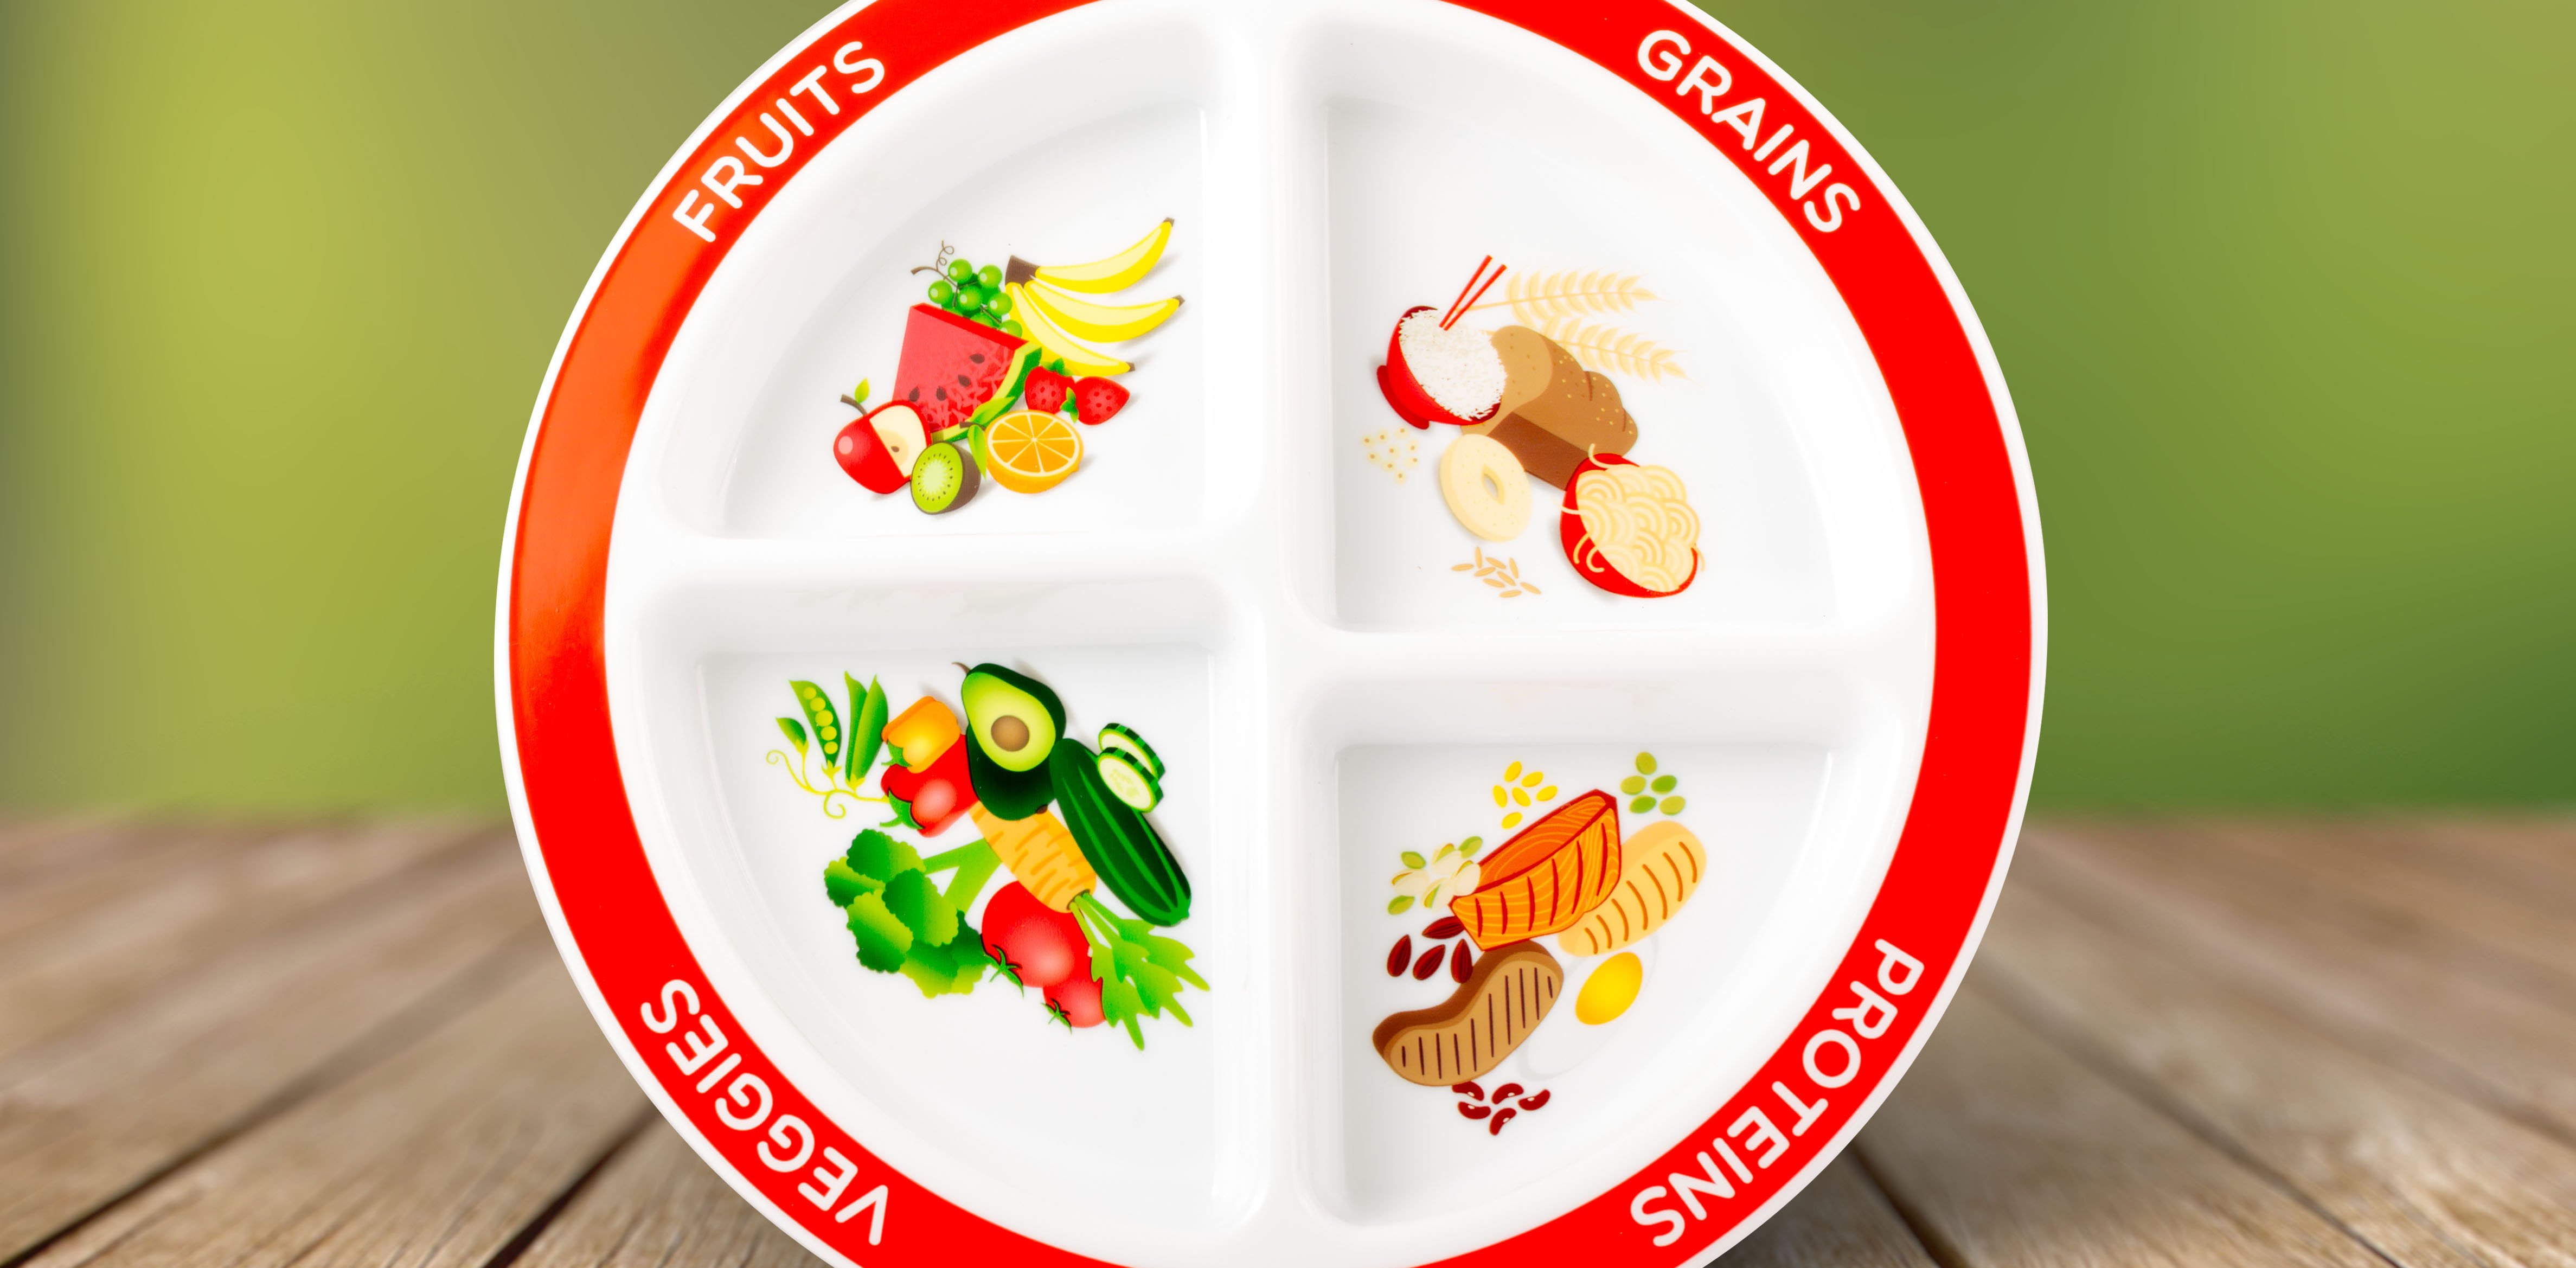 Myplate Focus On Fruits And Vegetables Healthy Ideas